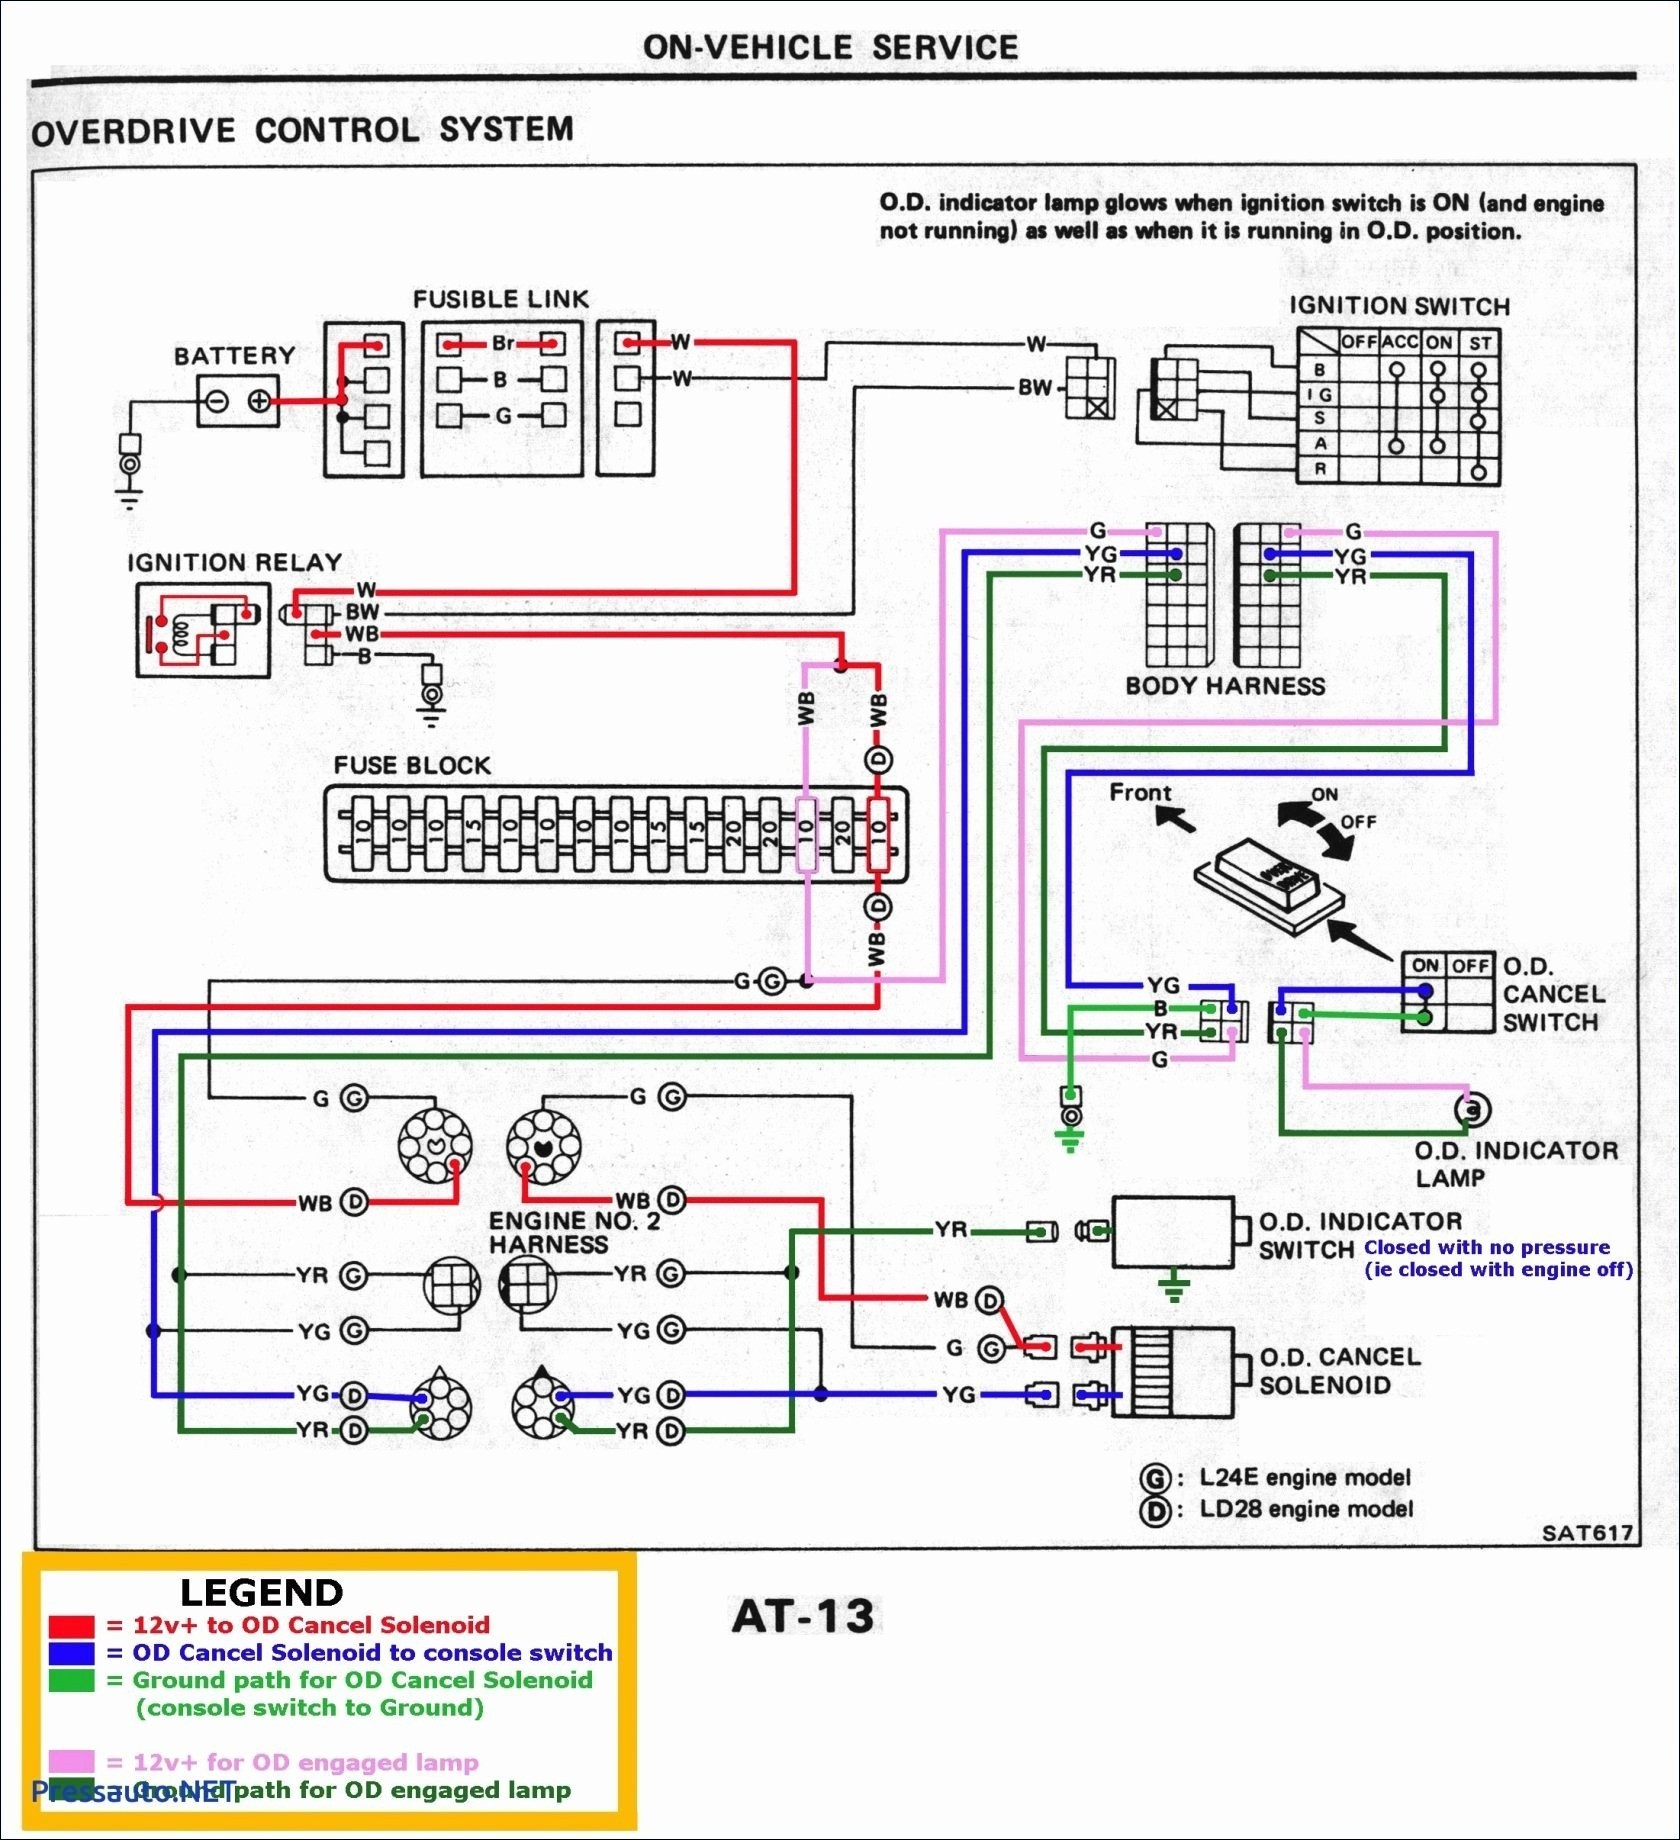 cat5 to hdmi wiring diagram gallerycat5 to hdmi wiring diagram